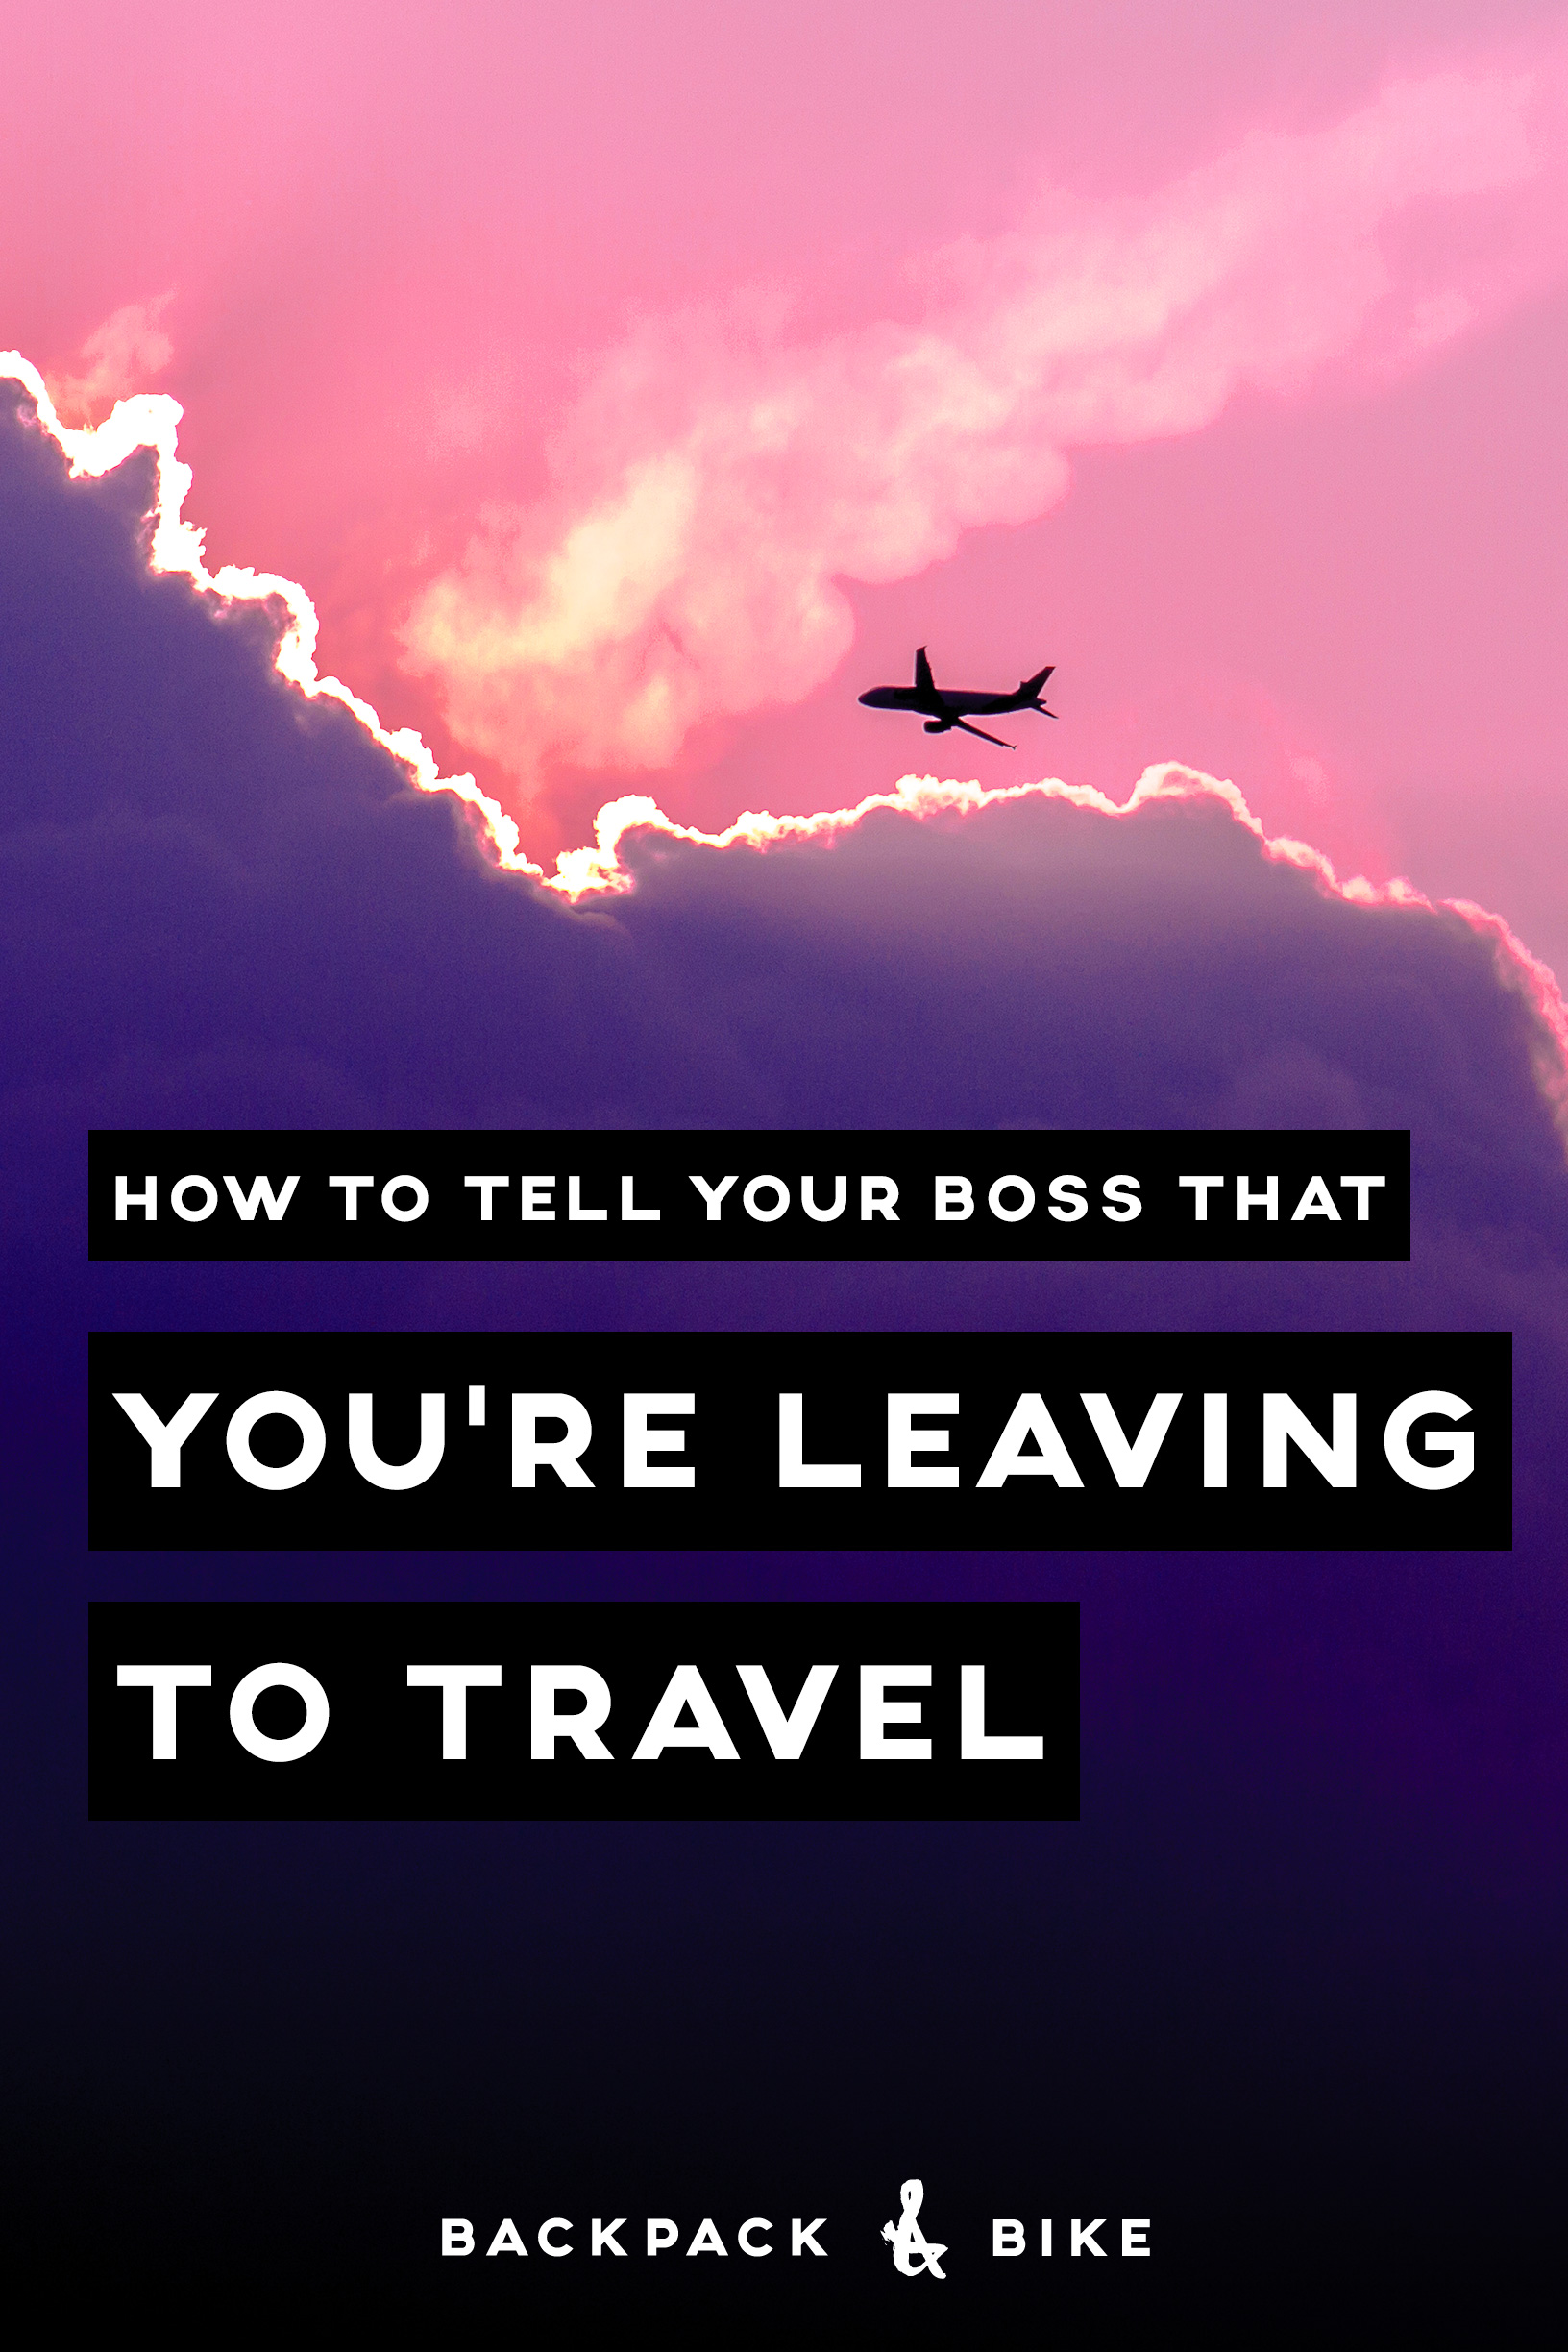 Thinking about how to tell your boss you're leaving to travel? Here are 5 pieces of advice that'll help you plan before your important meeting.